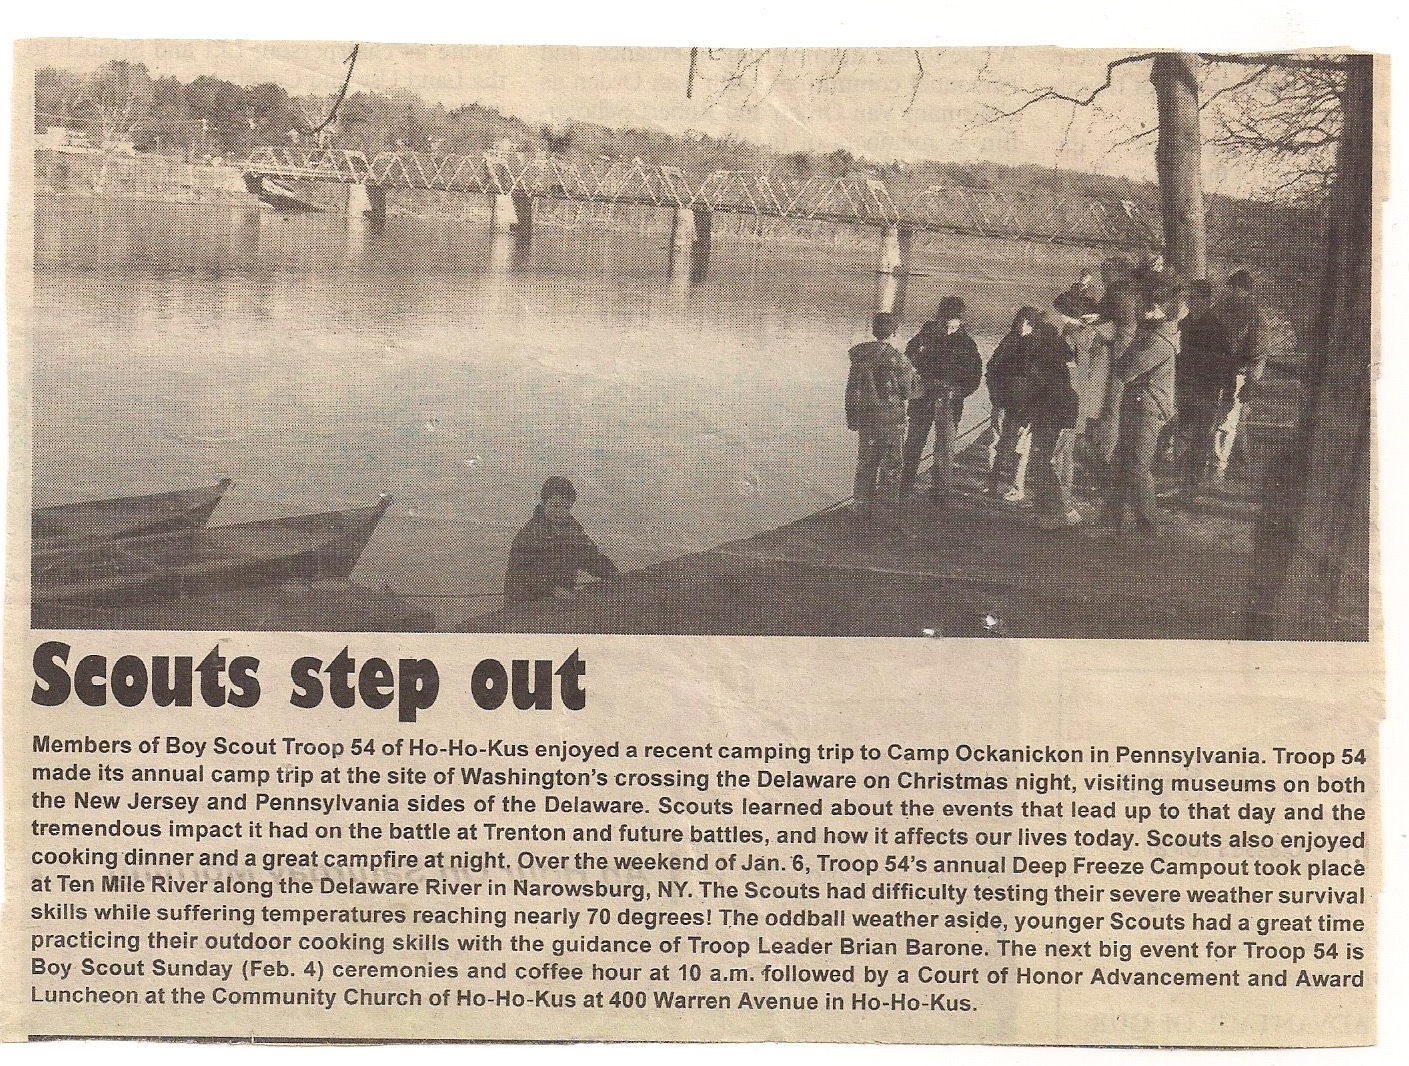 Annual December Washington's Crossing Campout